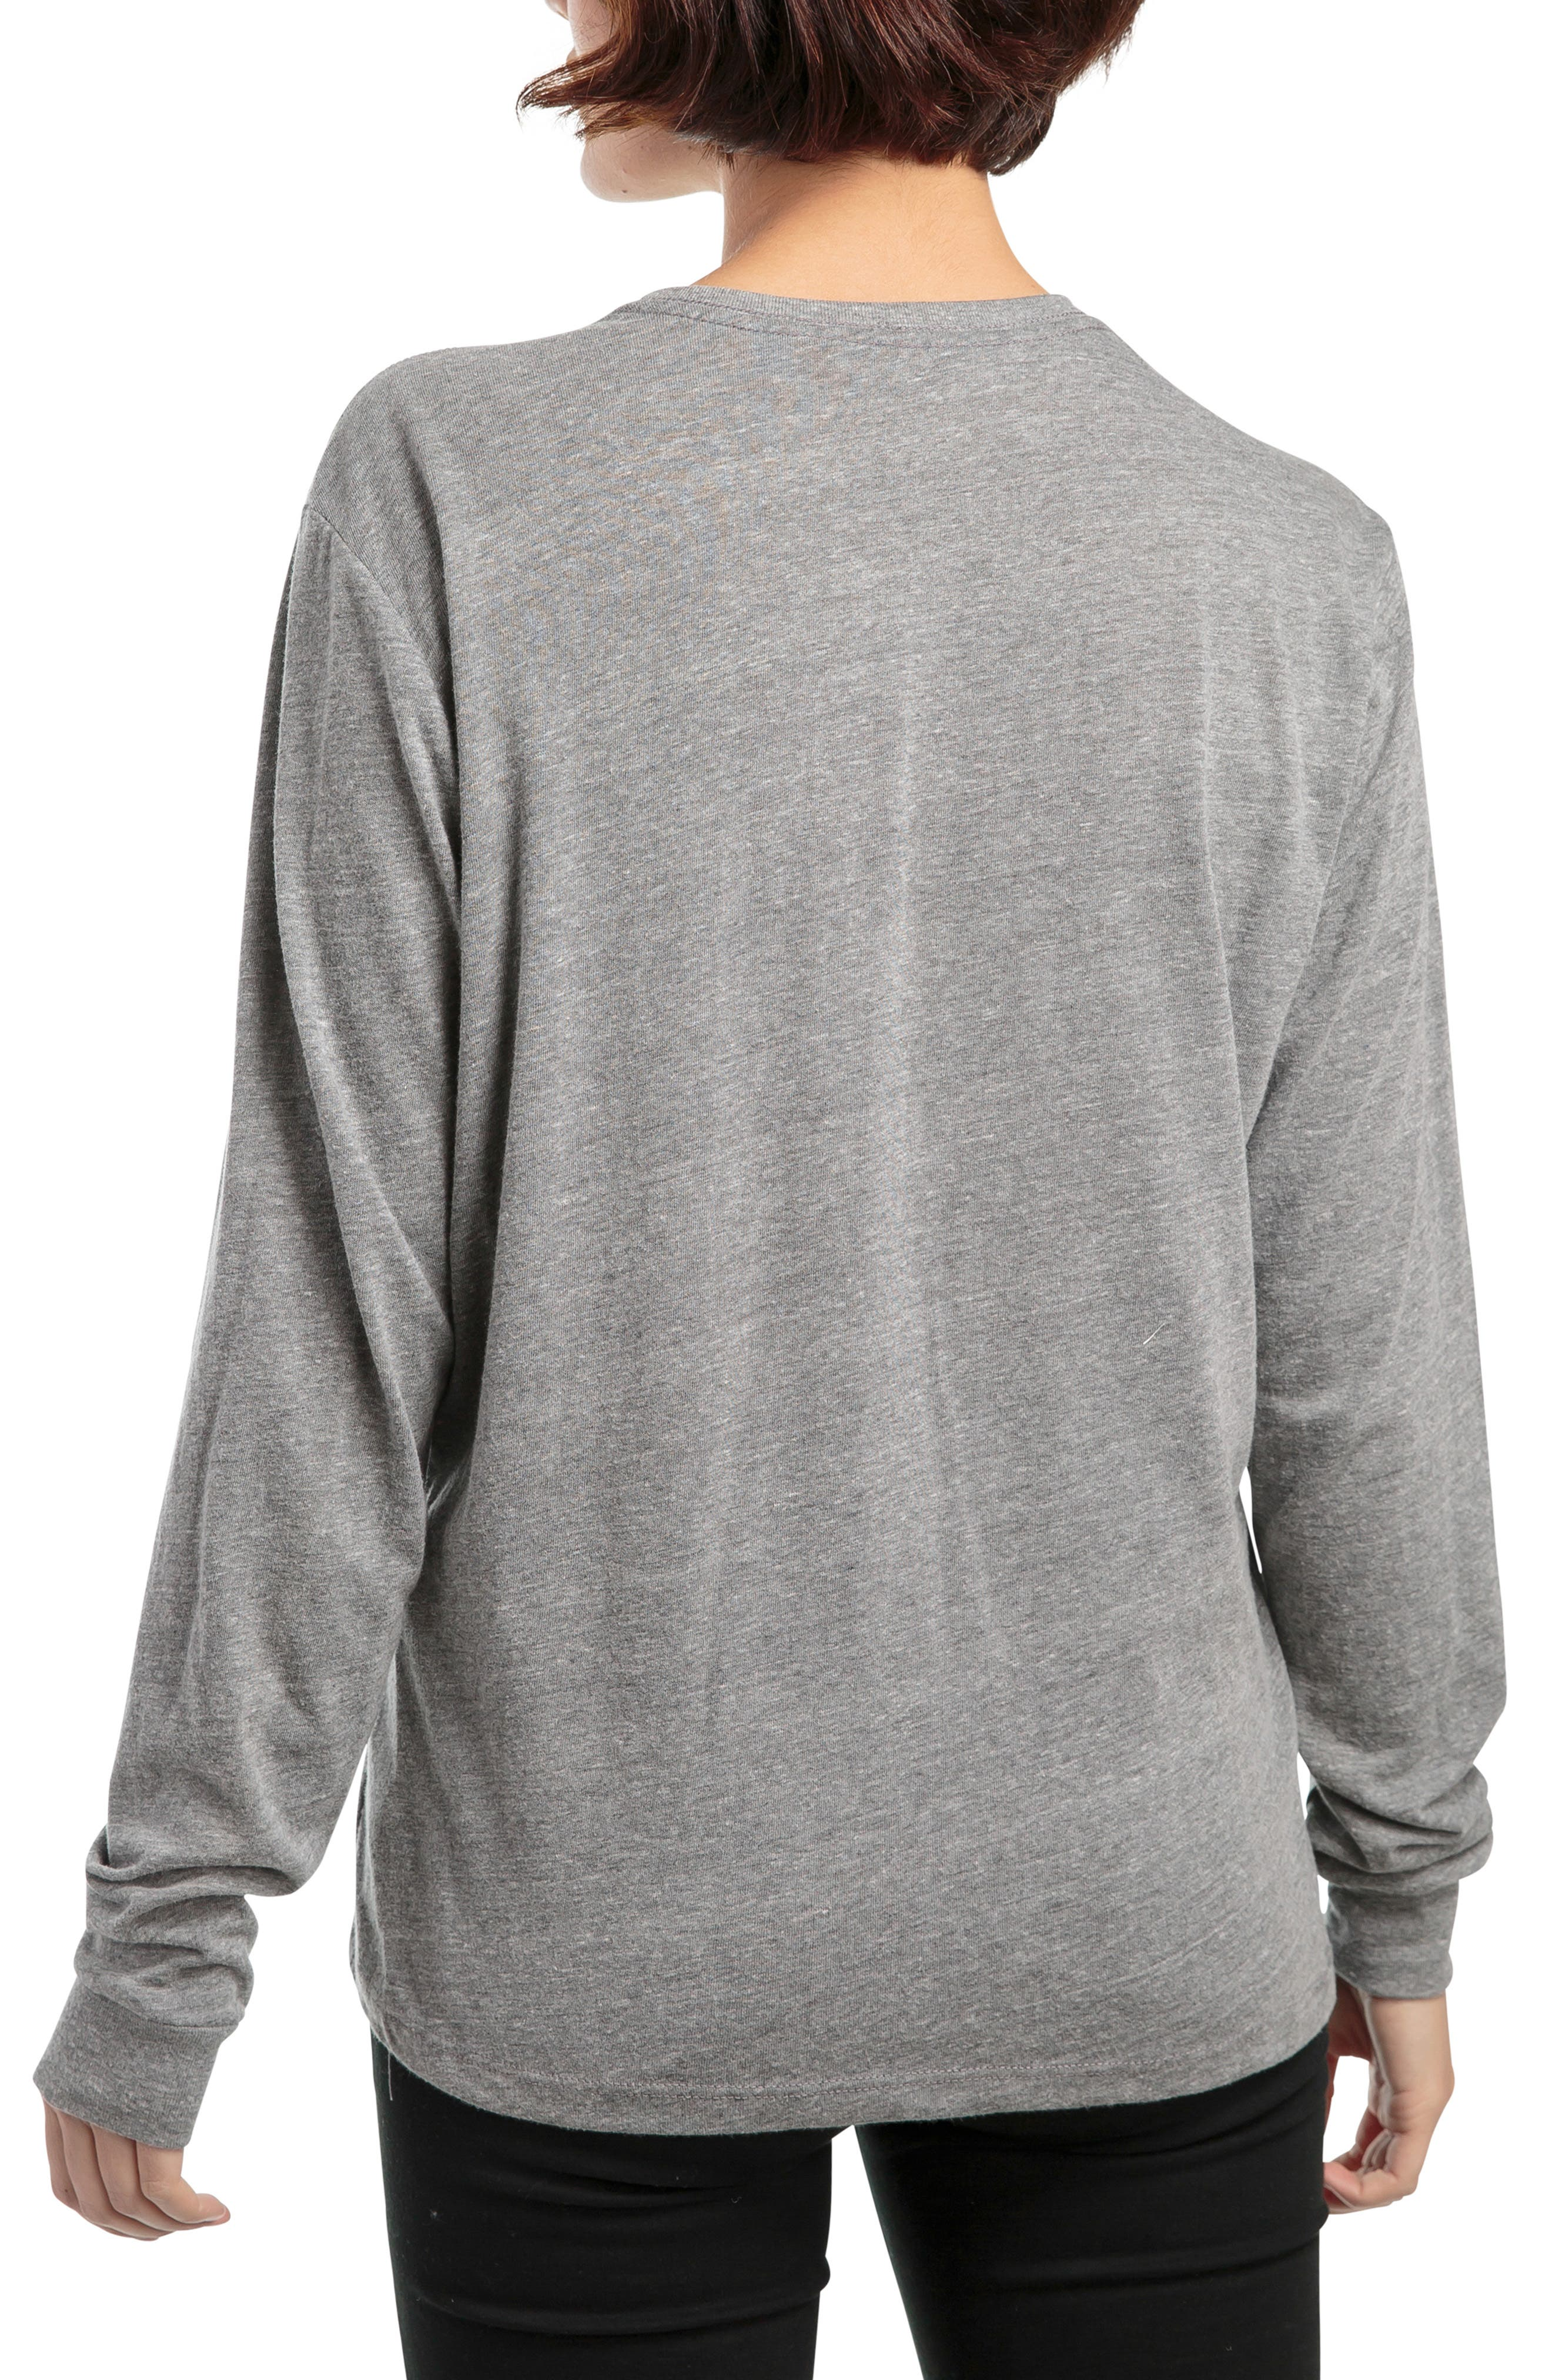 RICHER POORER, Long Sleeve Pocket Tee, Alternate thumbnail 2, color, 028